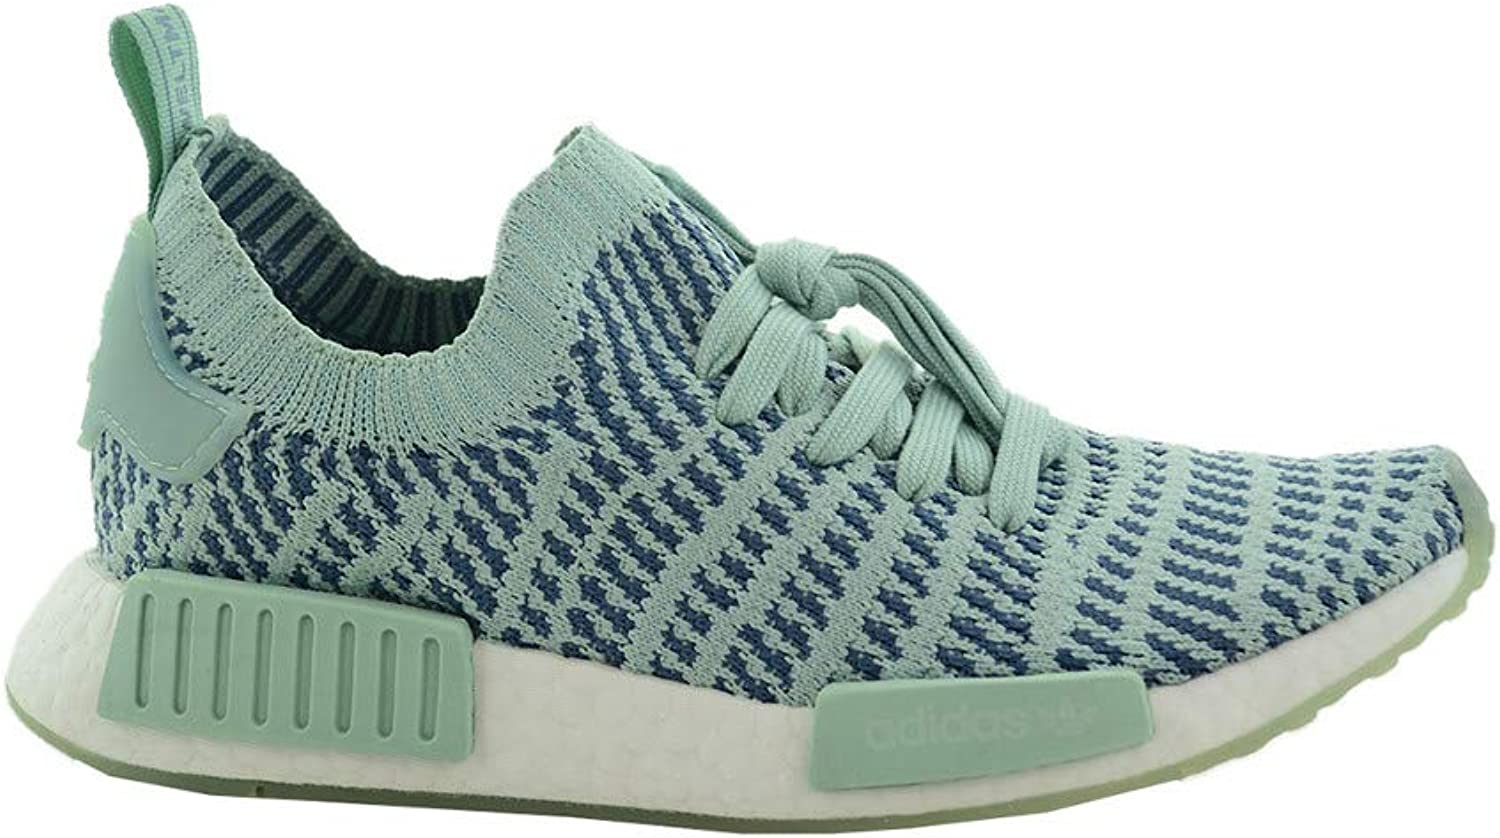 Adidas Originals NMD R1 STLT PK Running shoes Grey White (10 B(M) US)